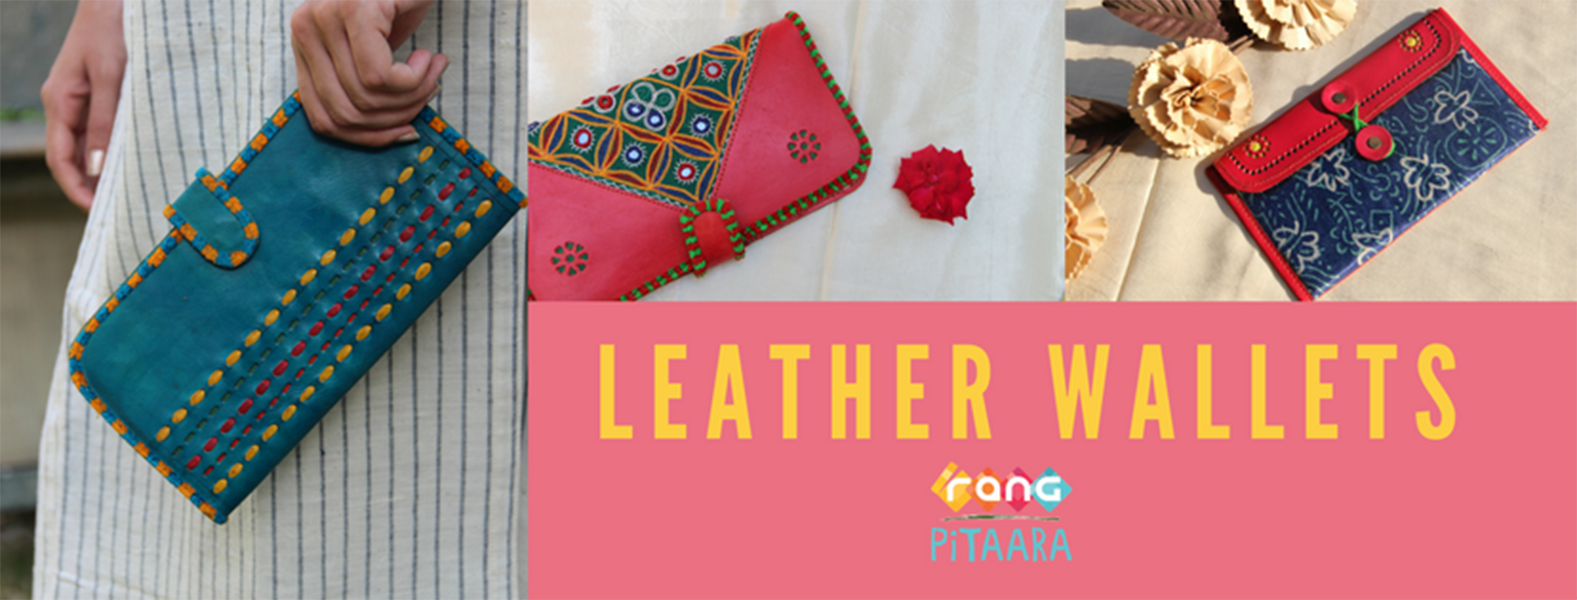 handicrafts-rangpitaara-leather